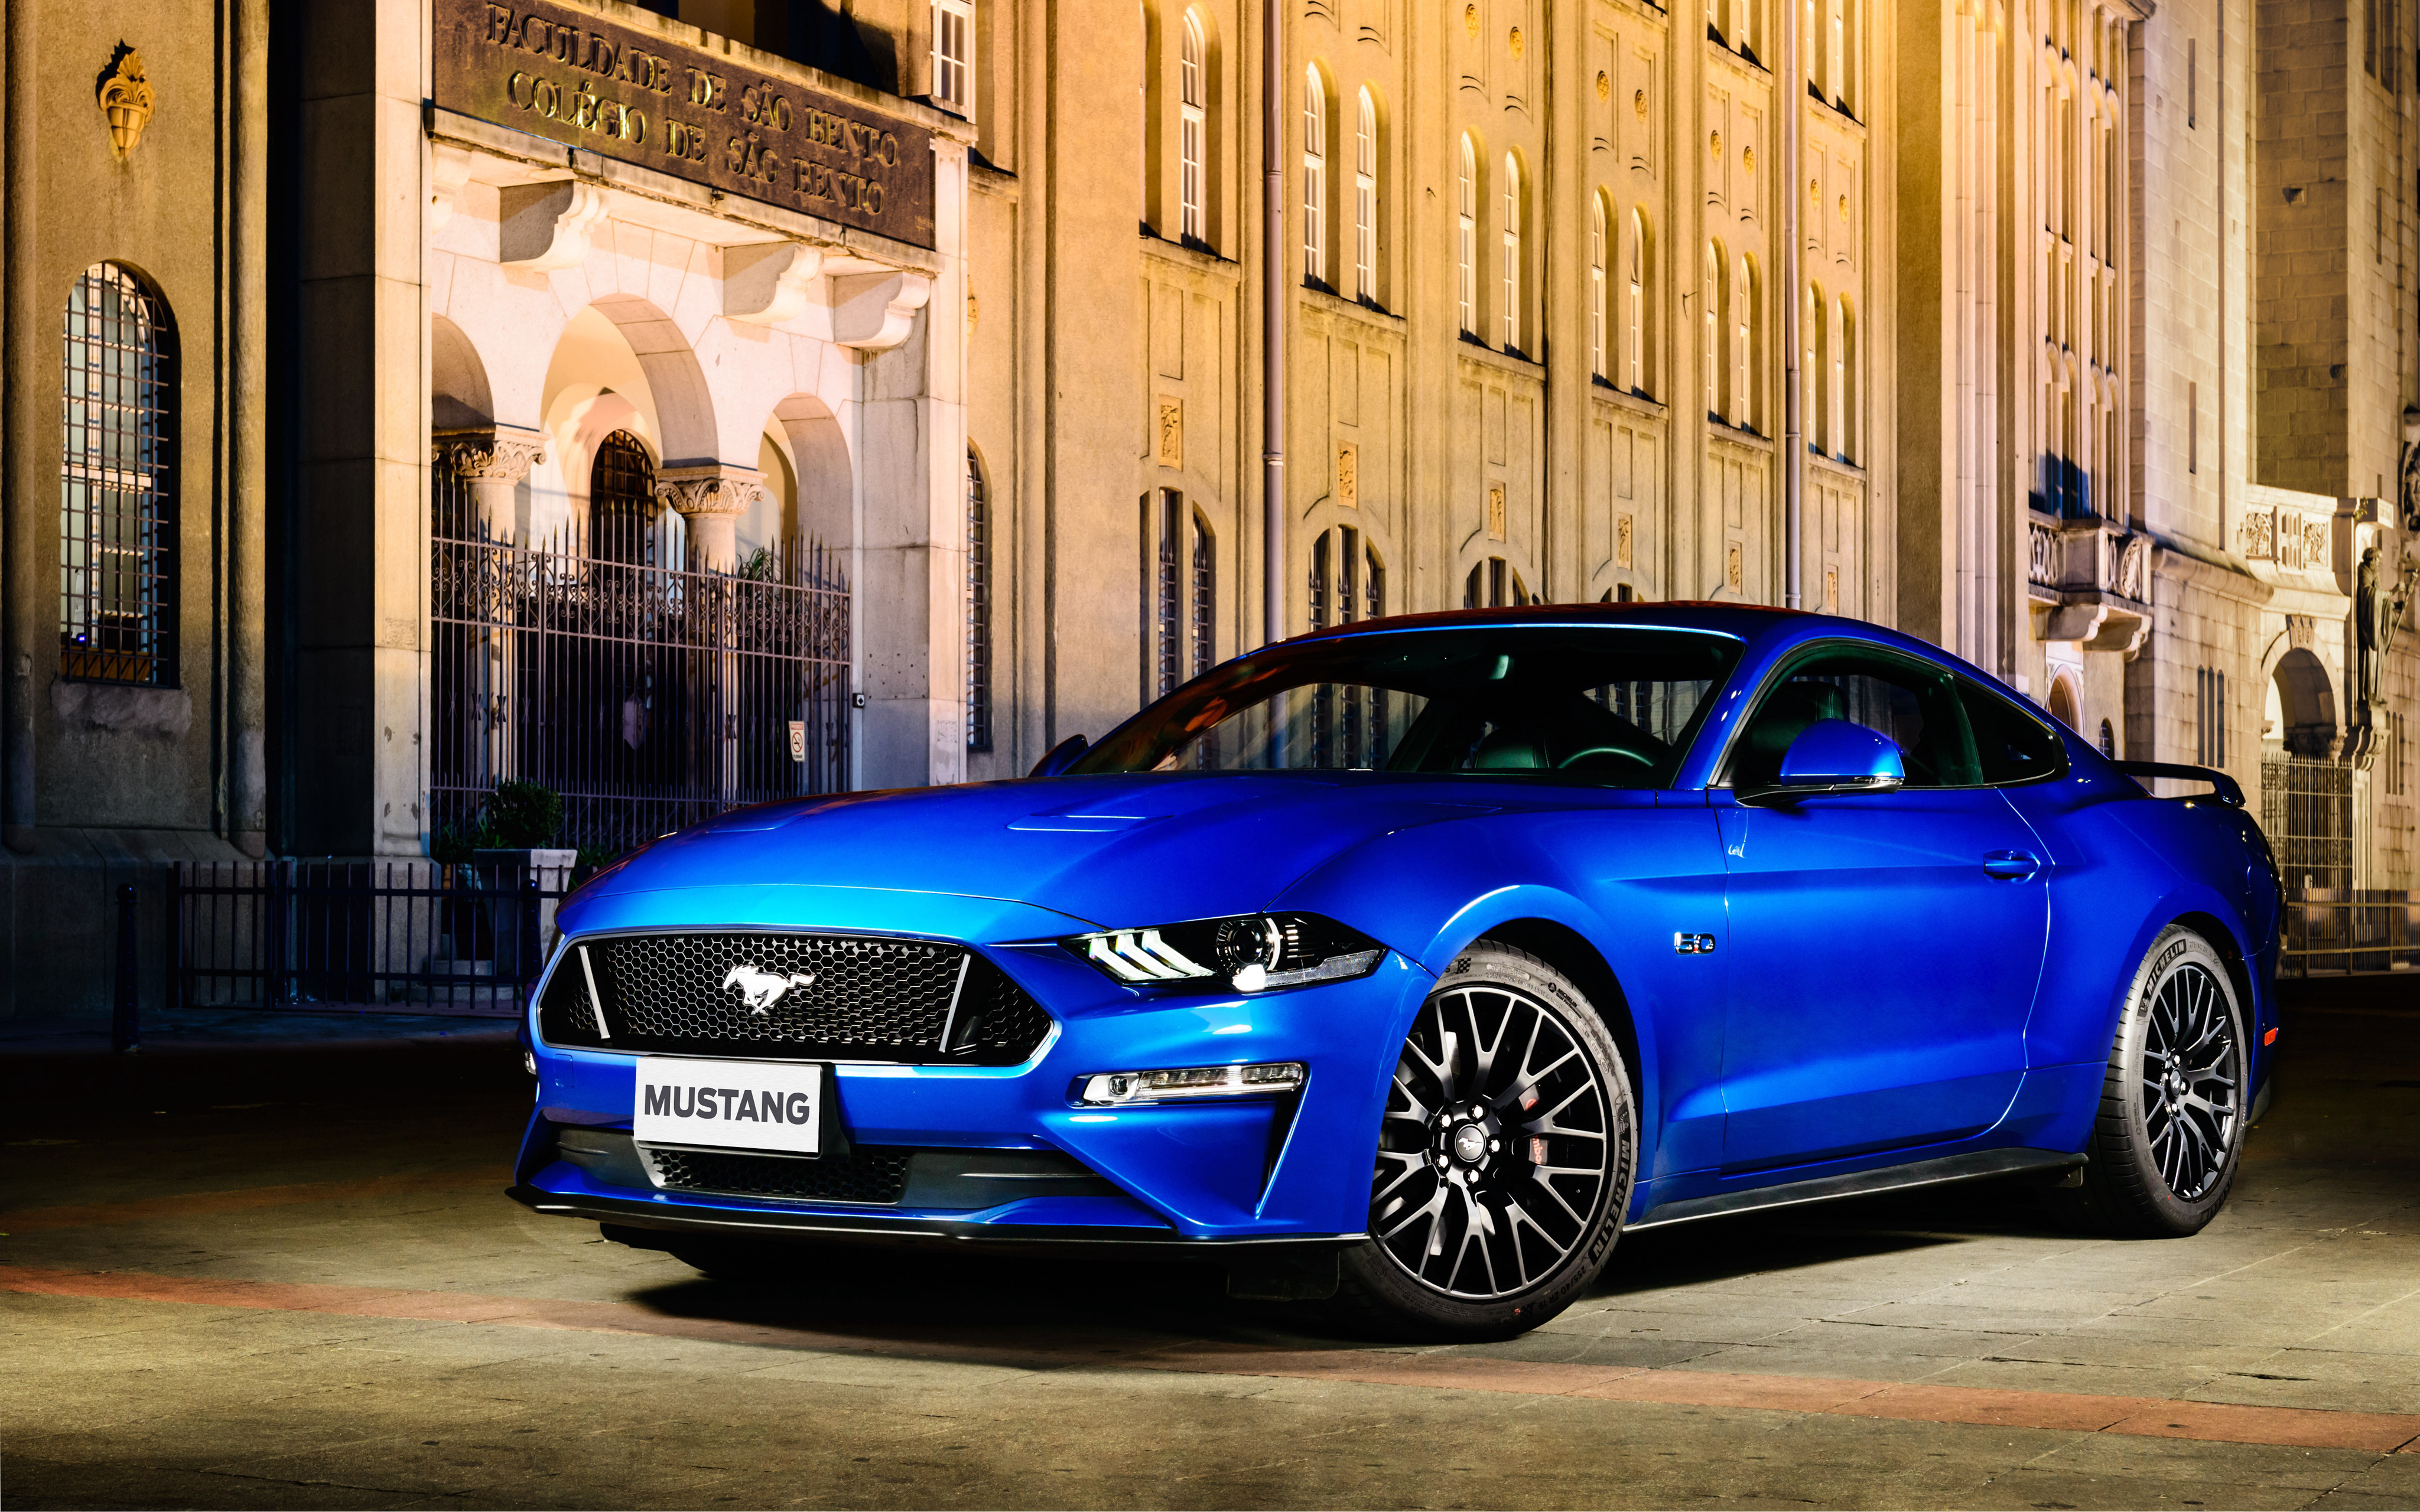 Free 3d Fantasy Wallpapers For Desktop 2018 Ford Mustang Gt Wallpapers Wallpapers Hd